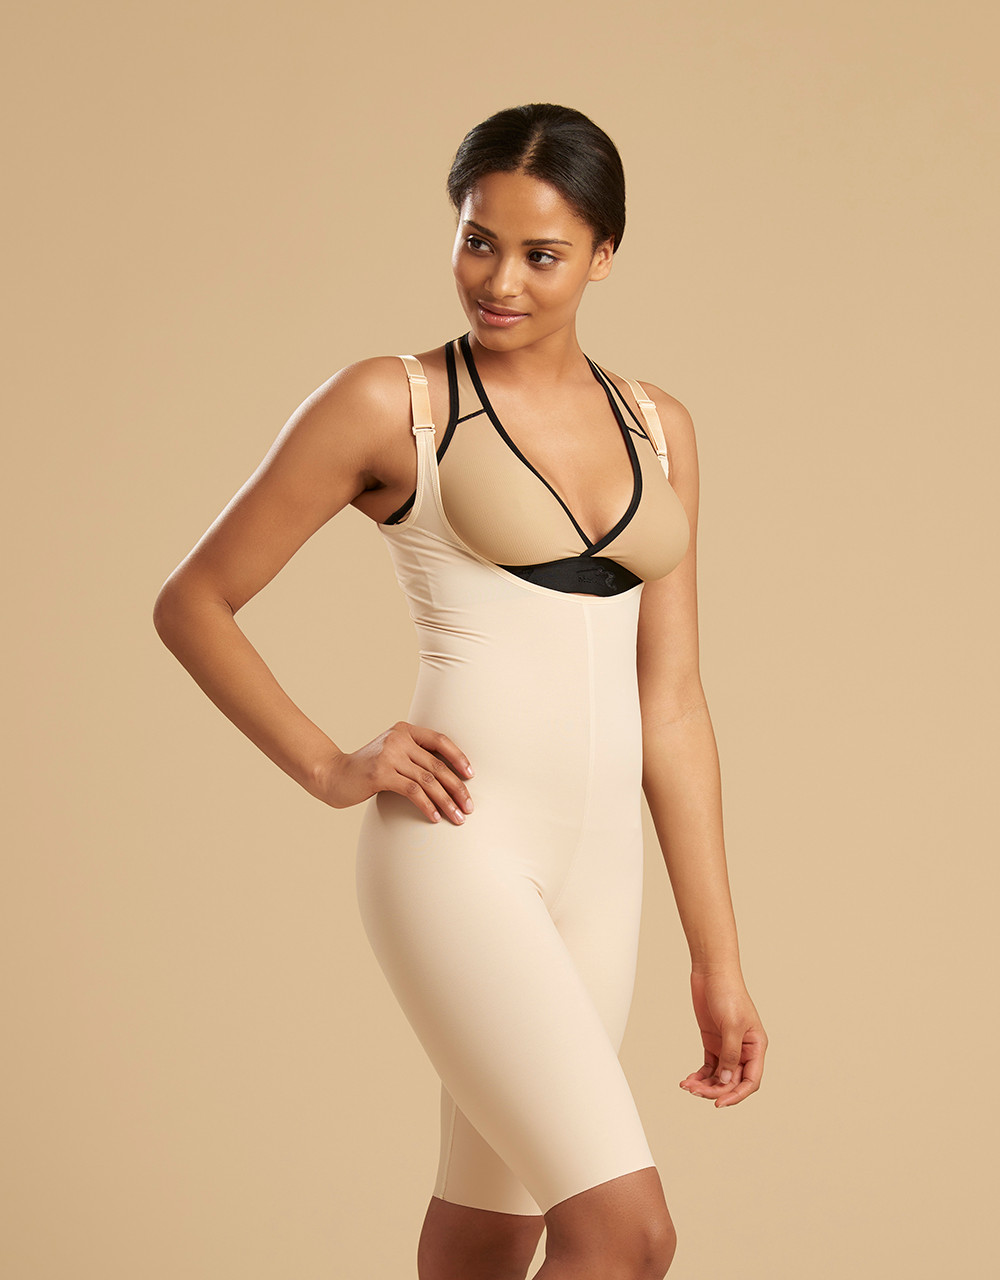 84ee1548462 Marena Recovery SFBHS2 sigh length girdle with high back zipperless